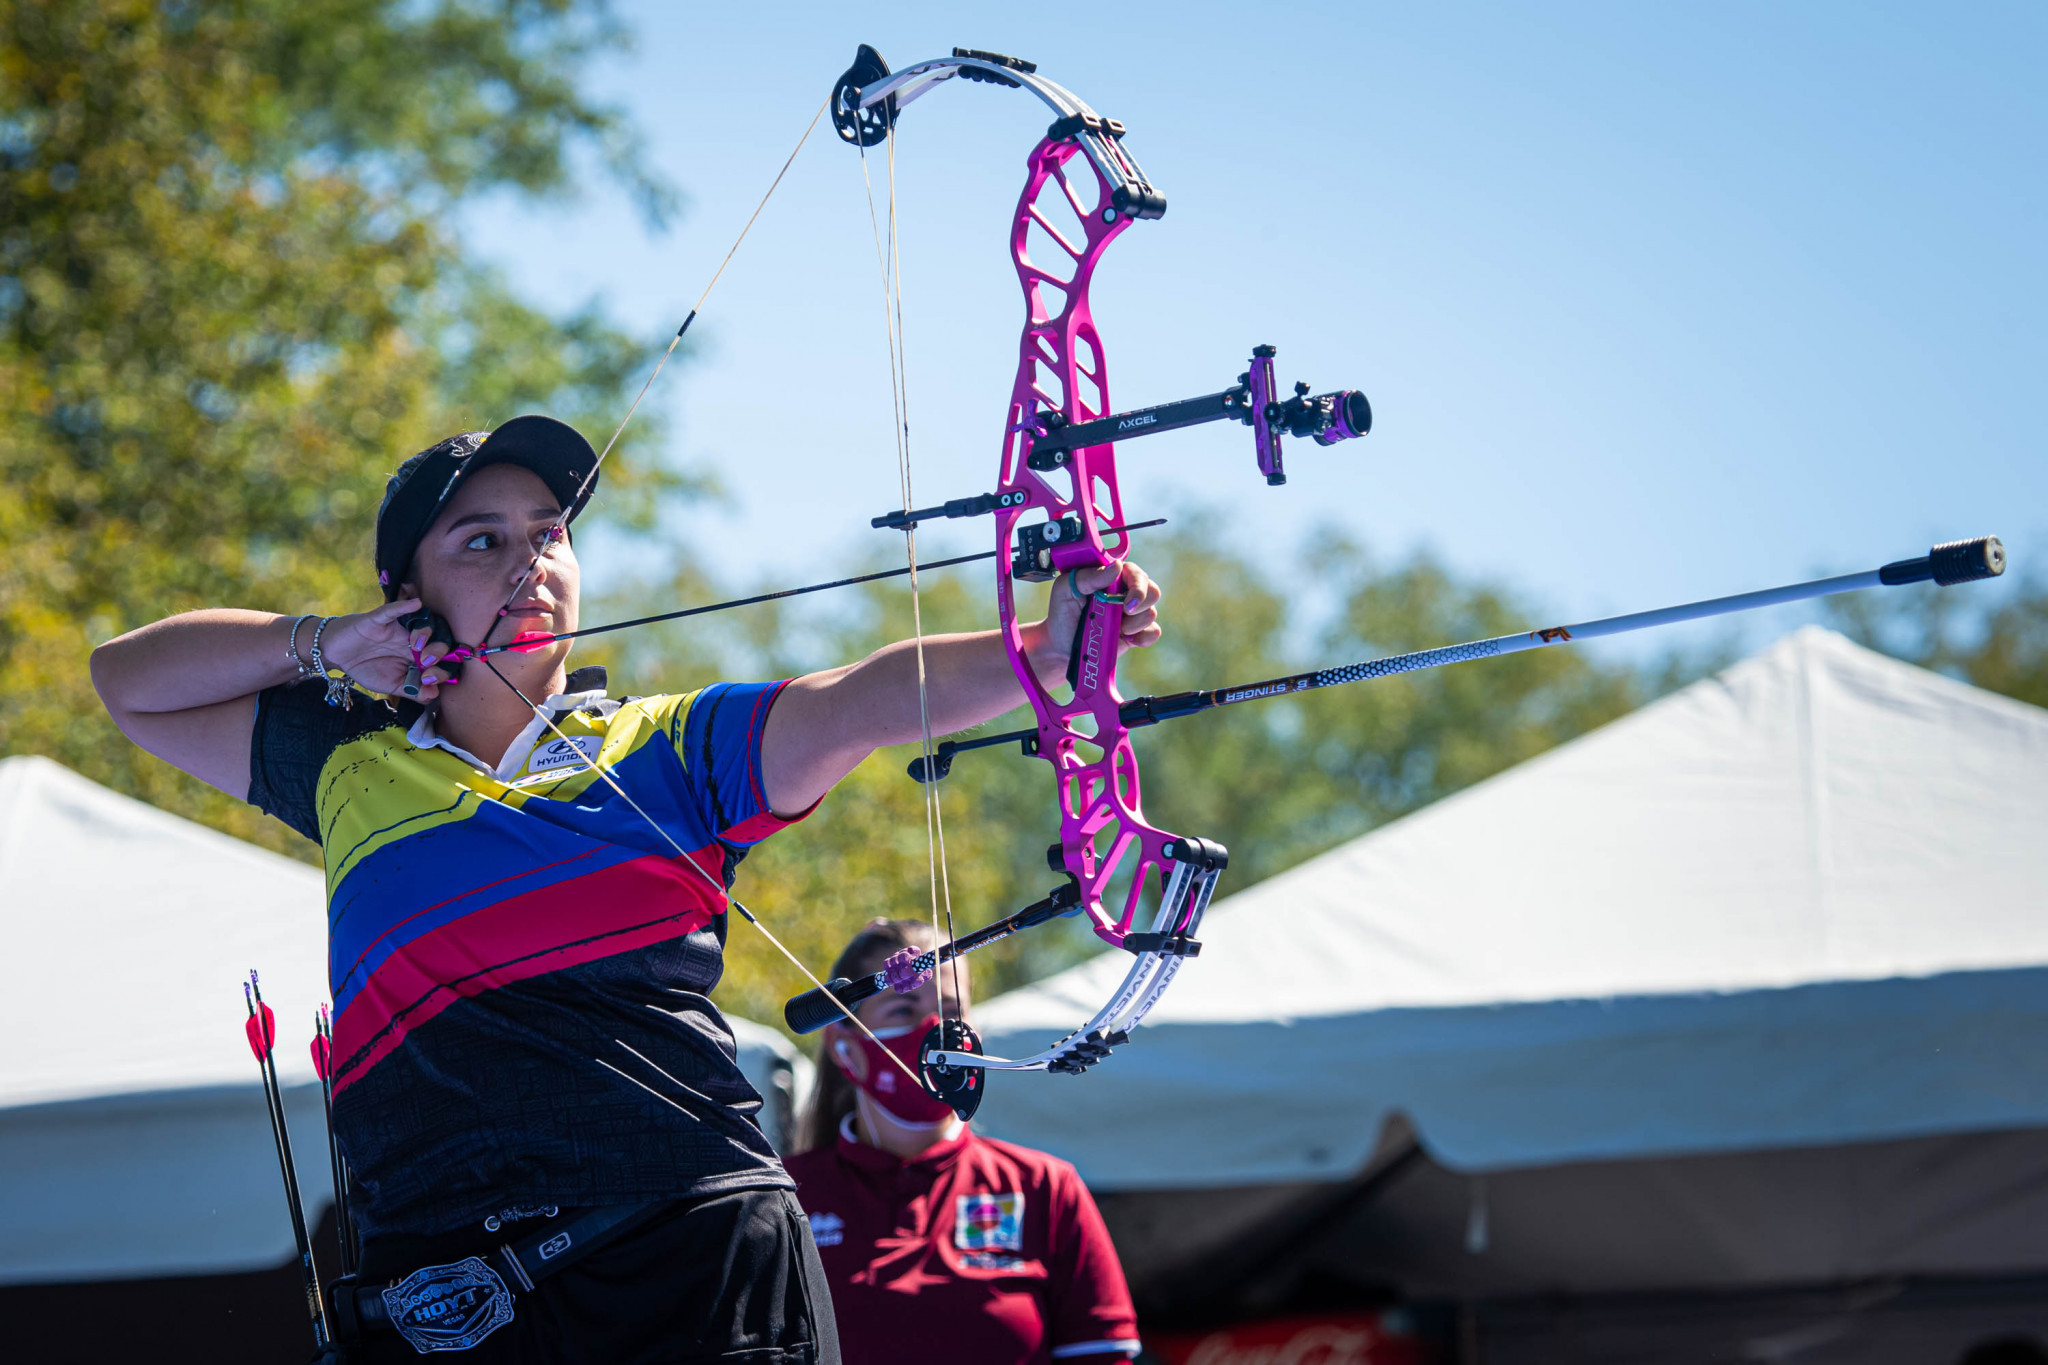 López wins record sixth Archery World Cup crown as Schloesser also retains title